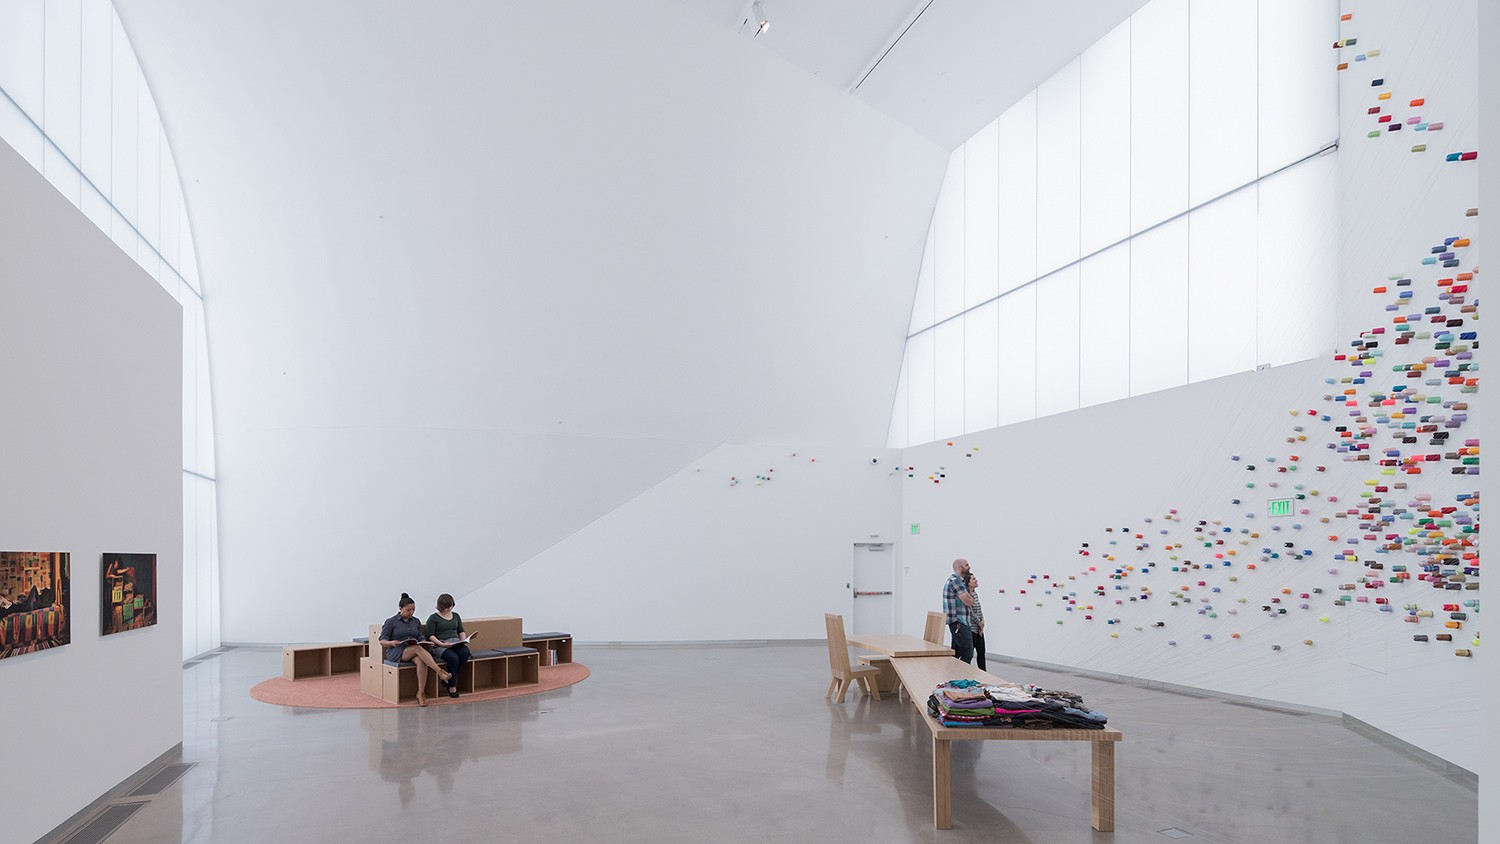 https://s3.us-east-2.amazonaws.com/steven-holl/uploads/projects/project-images/IwanBaan_ICA_VCU_18-03SHA3677_WH.jpg